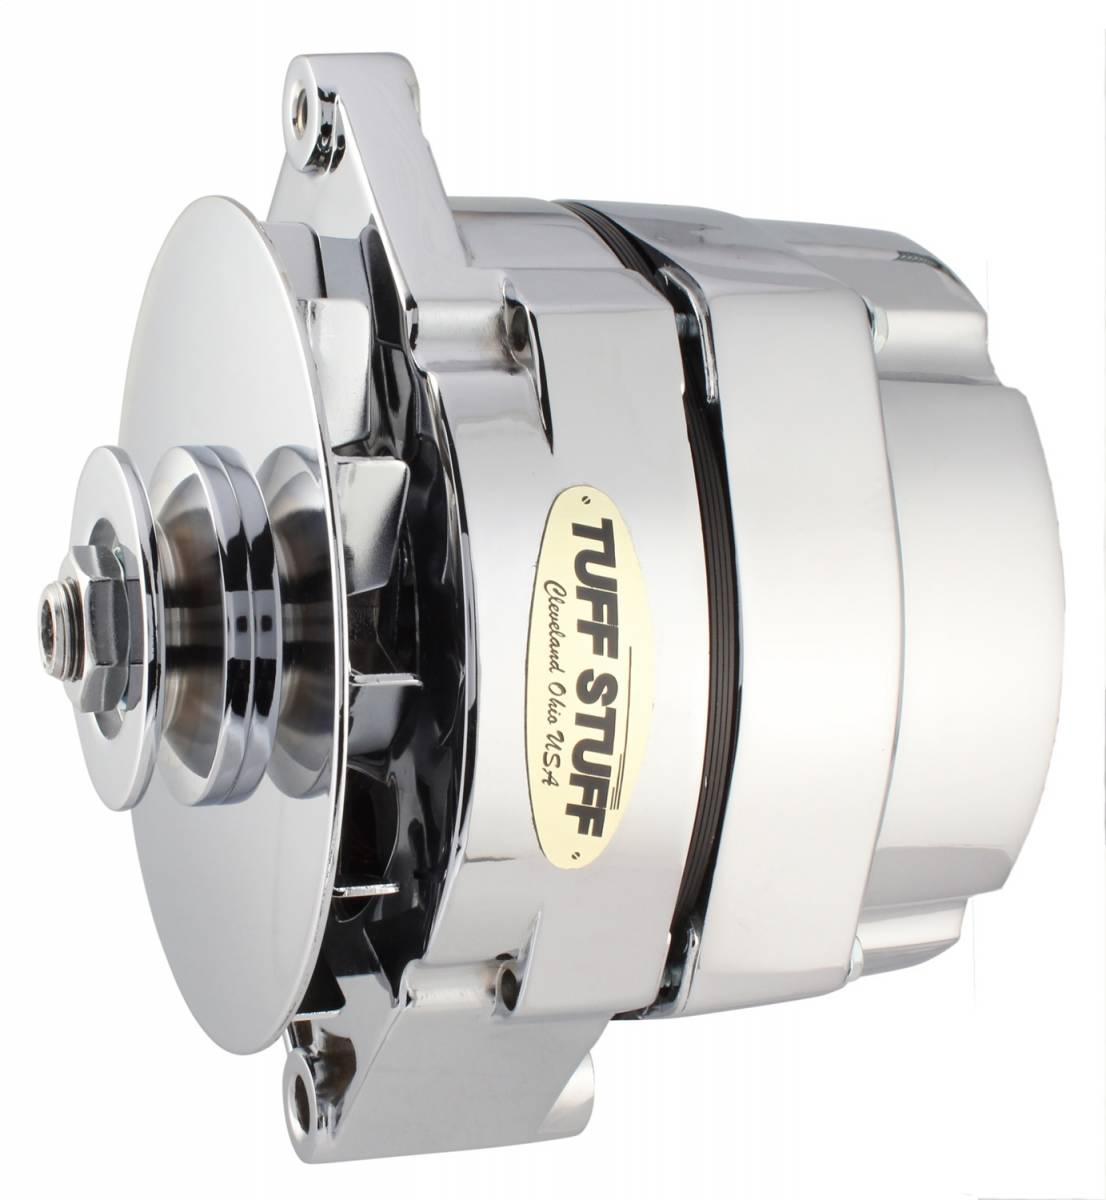 Tuff Stuff Performance - Alternator 80 AMP OEM Wire V Groove Pulley External Regulator Chrome Must Be Used With An External Solid State Voltage Regulator 7102NA